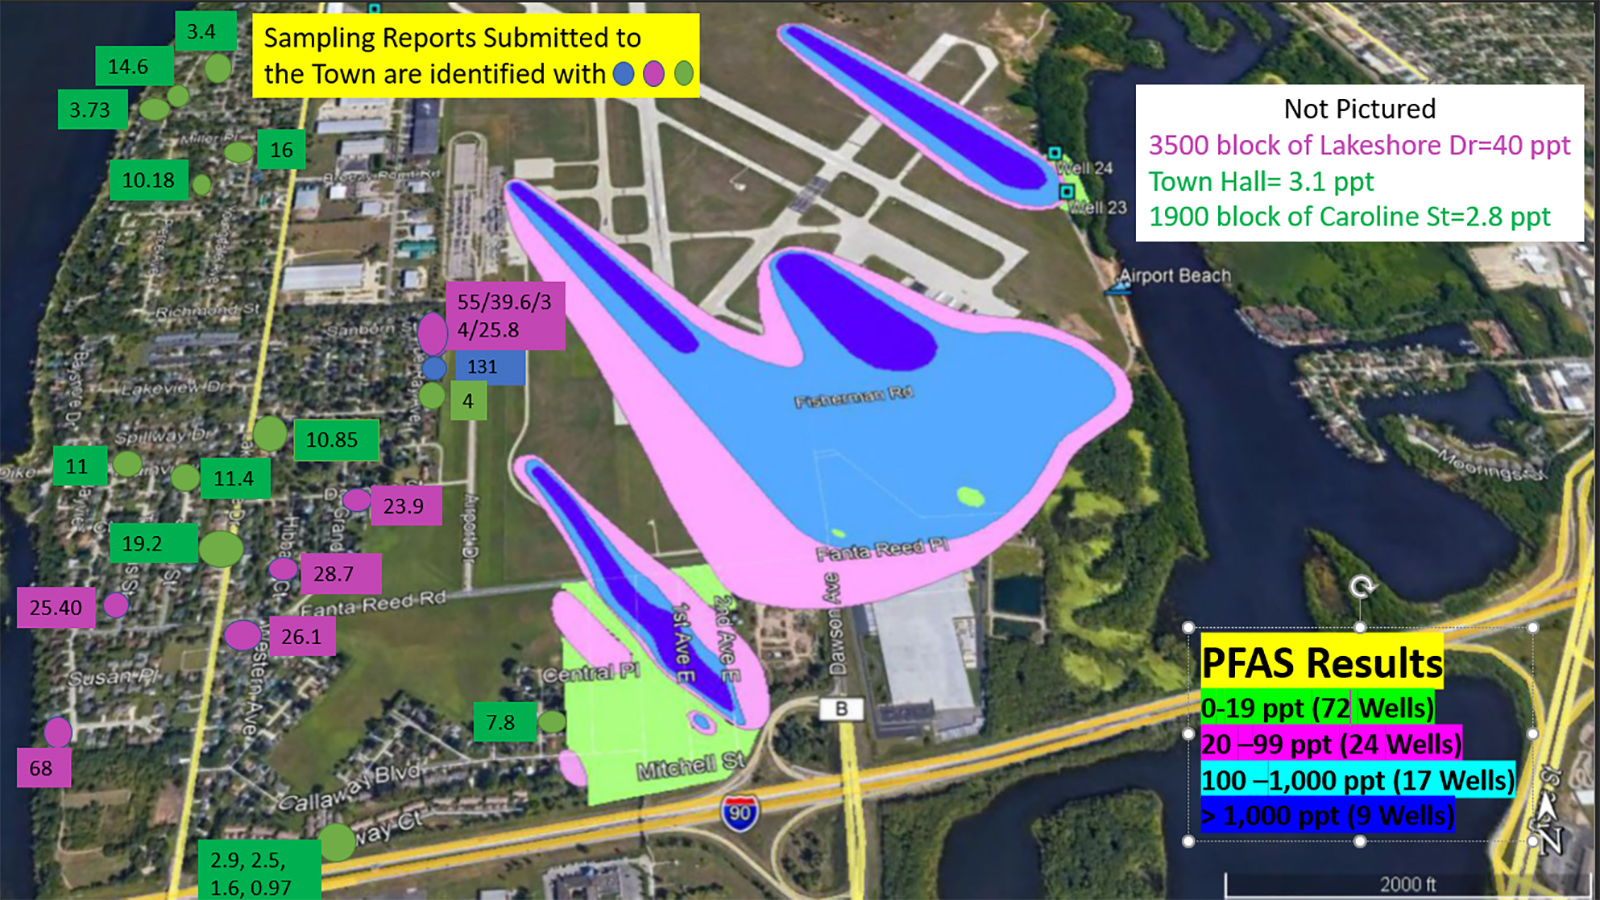 Map of water well sampling test results for PFAS contamination in town of Campbell near the La Crosse airport